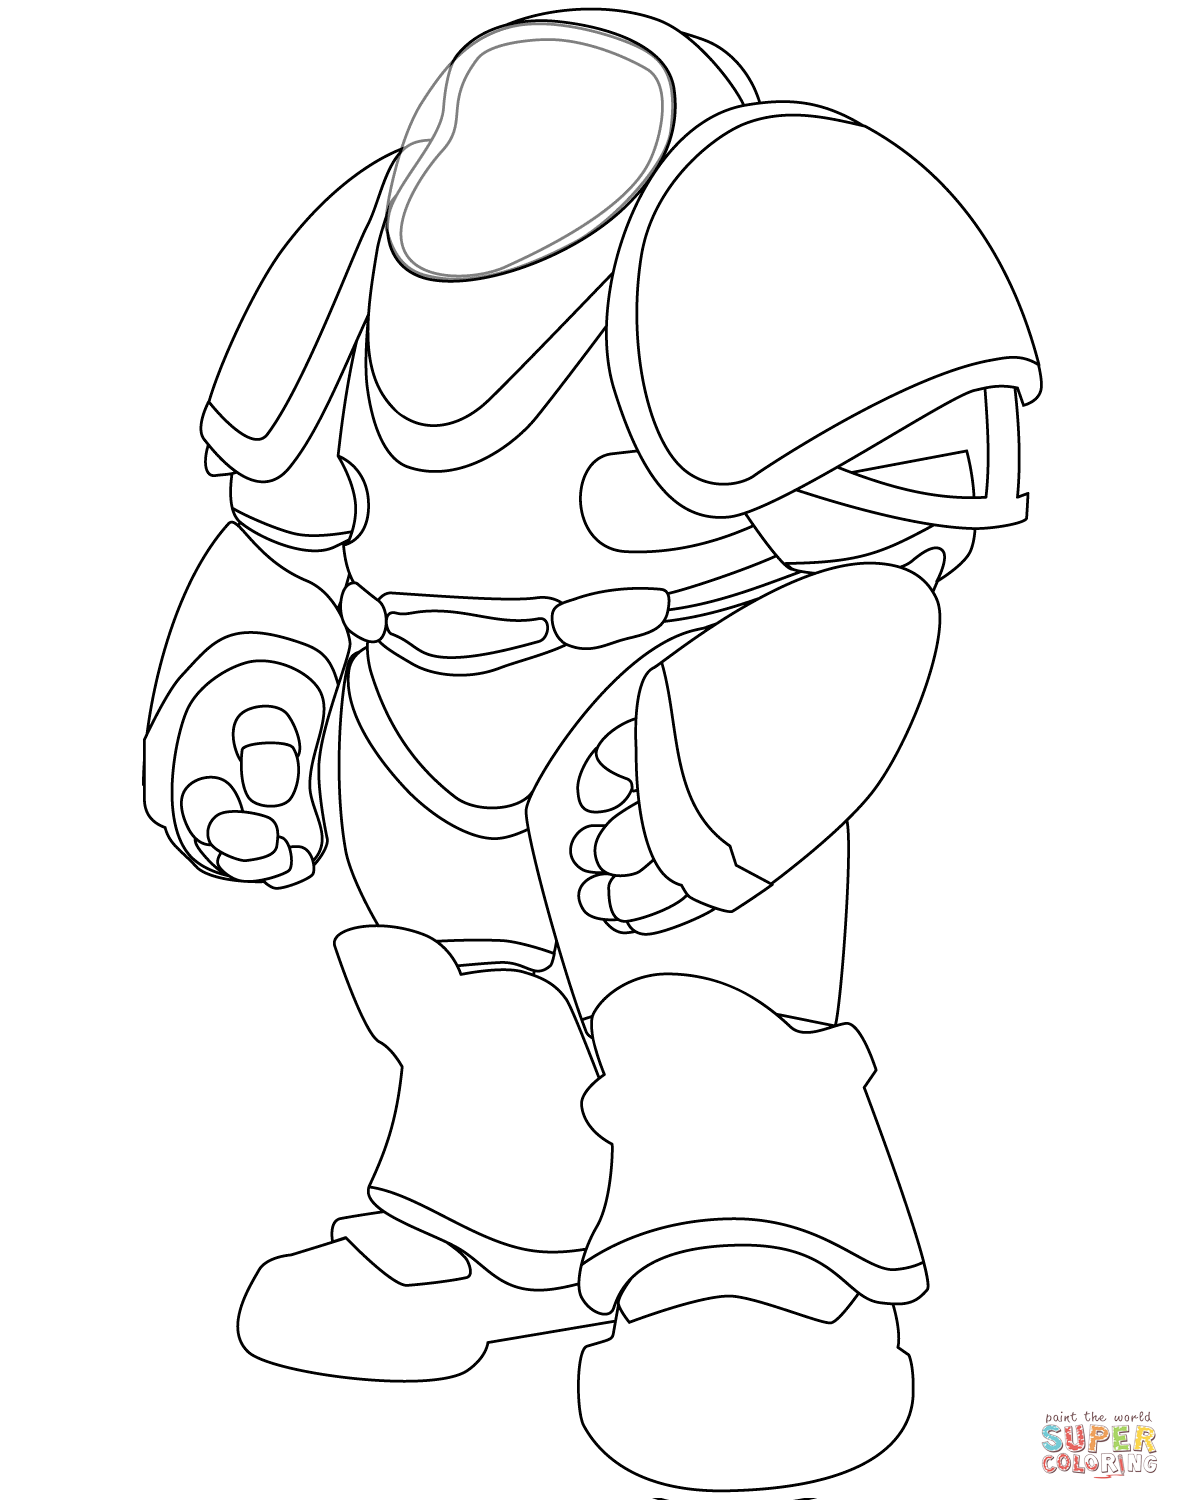 1180x1500 Space Suit Coloring Page Free Printable Coloring Pages